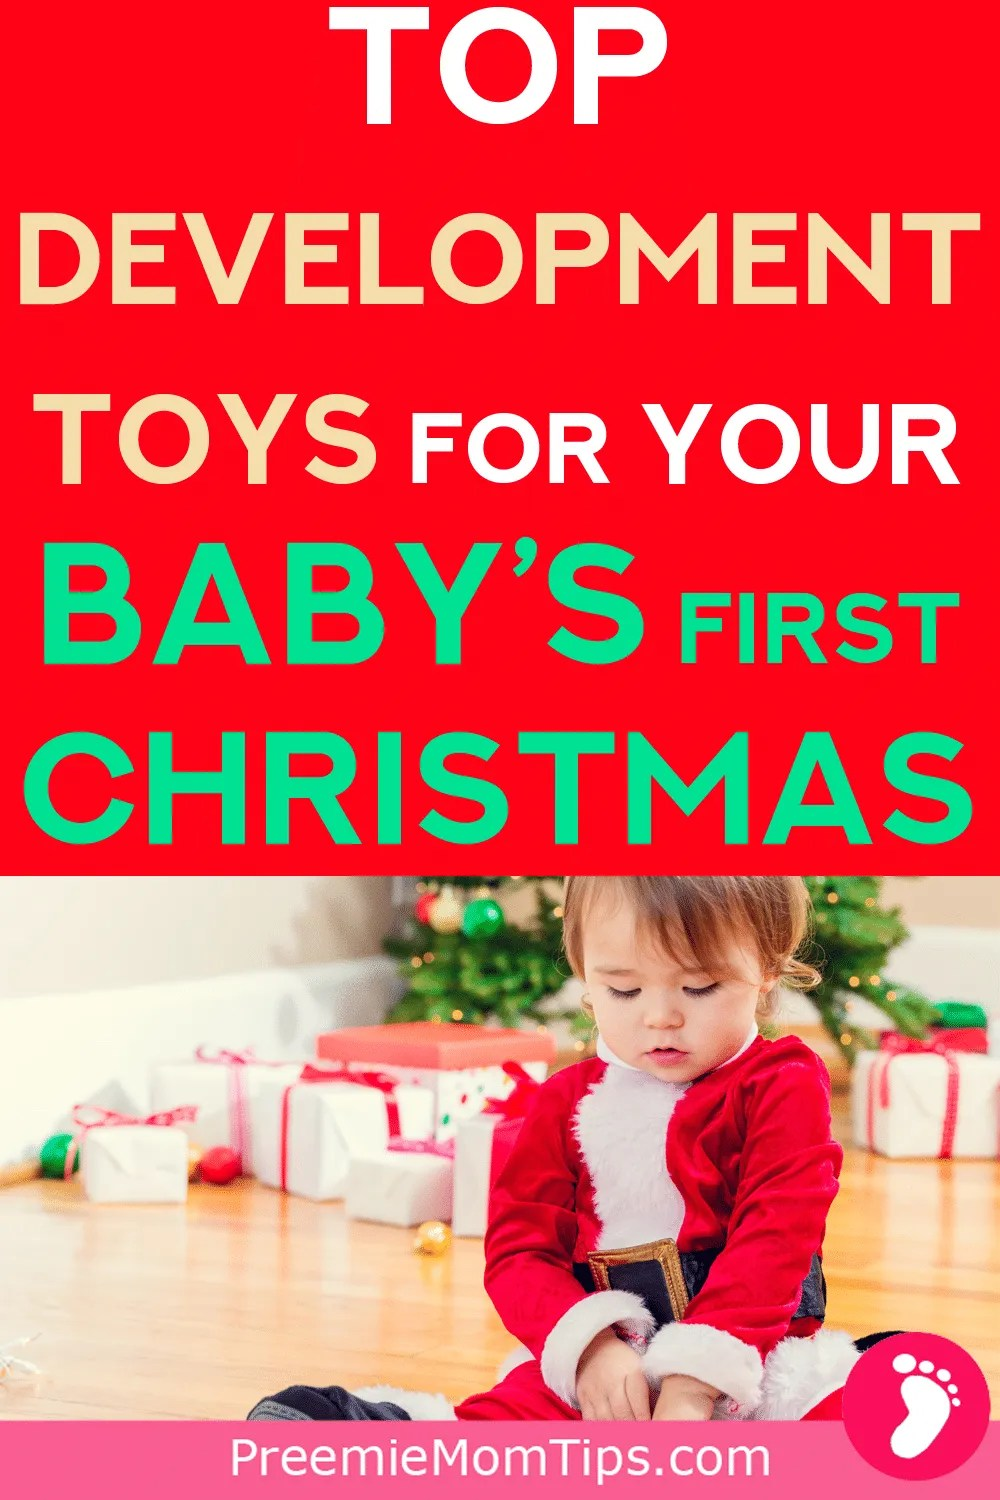 Looking for your baby's perfect Christmas gift? Check out these gift ideas that will help your baby's monthly development